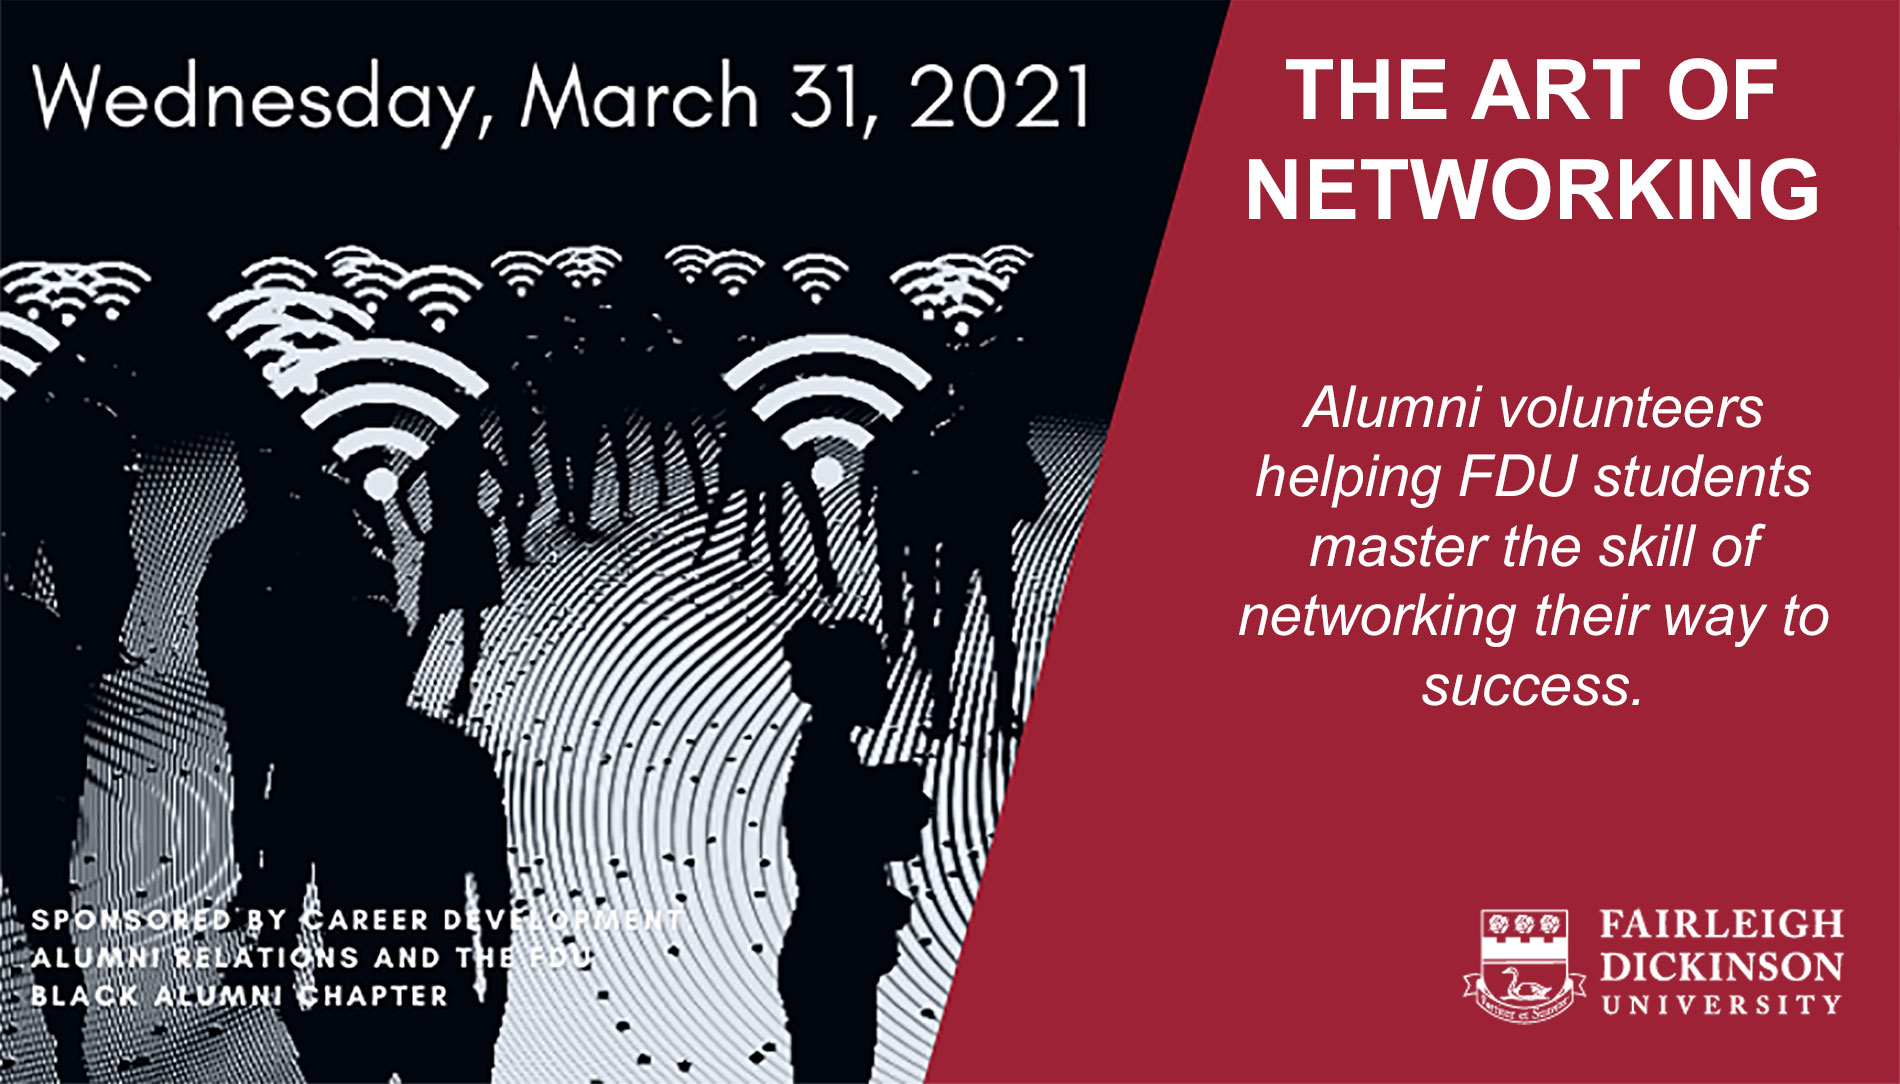 The Art of Networking: alumni volunteering to help students master the skill of networking their way to success - March 31, 2021